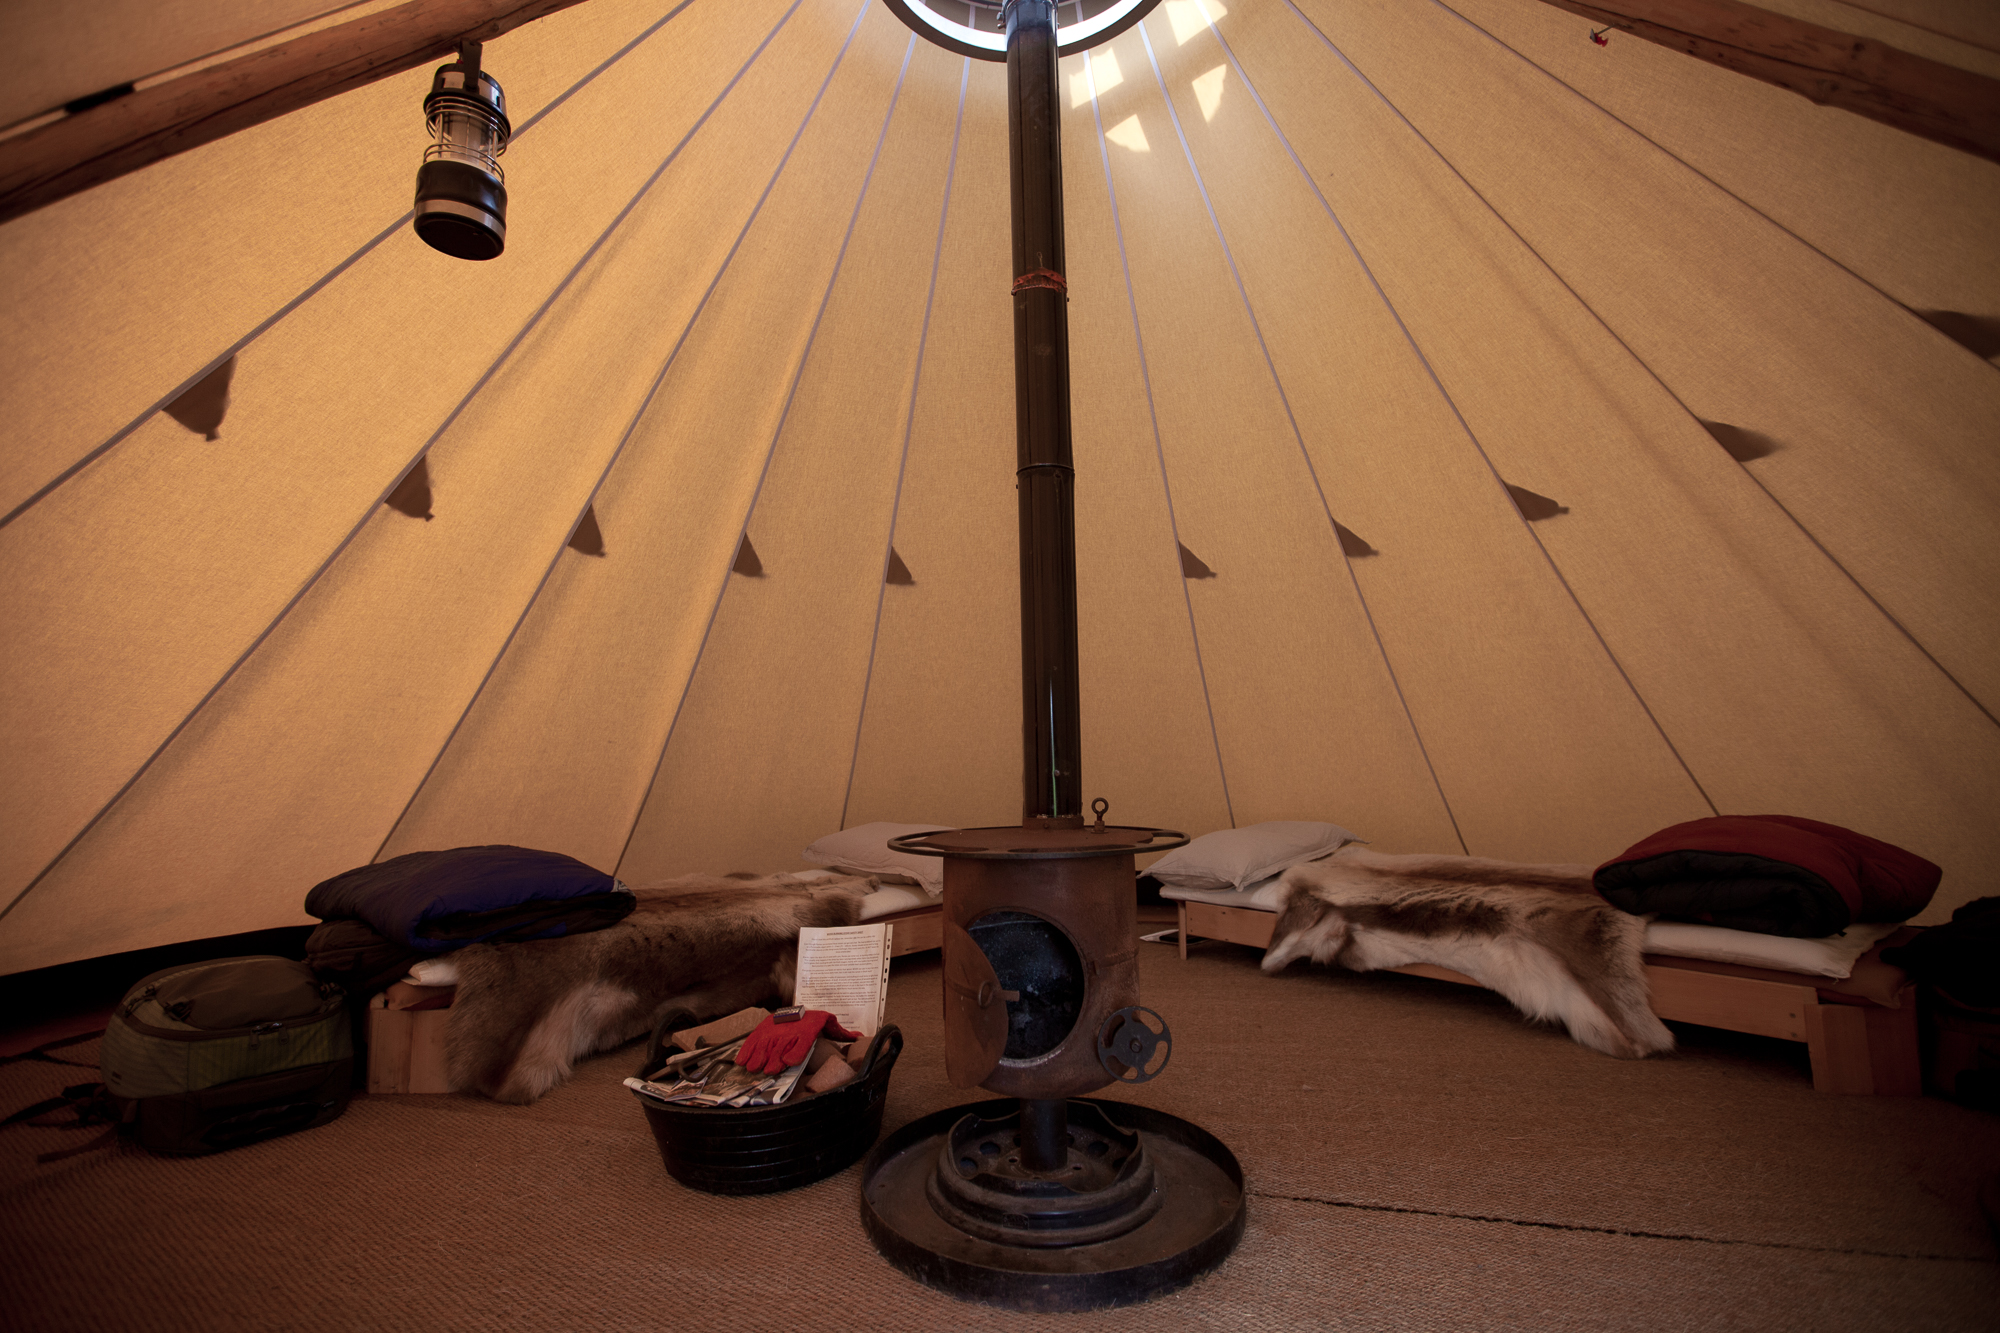 The inside of a teepee at Fforest Camp in Wales. By Leonie Wise